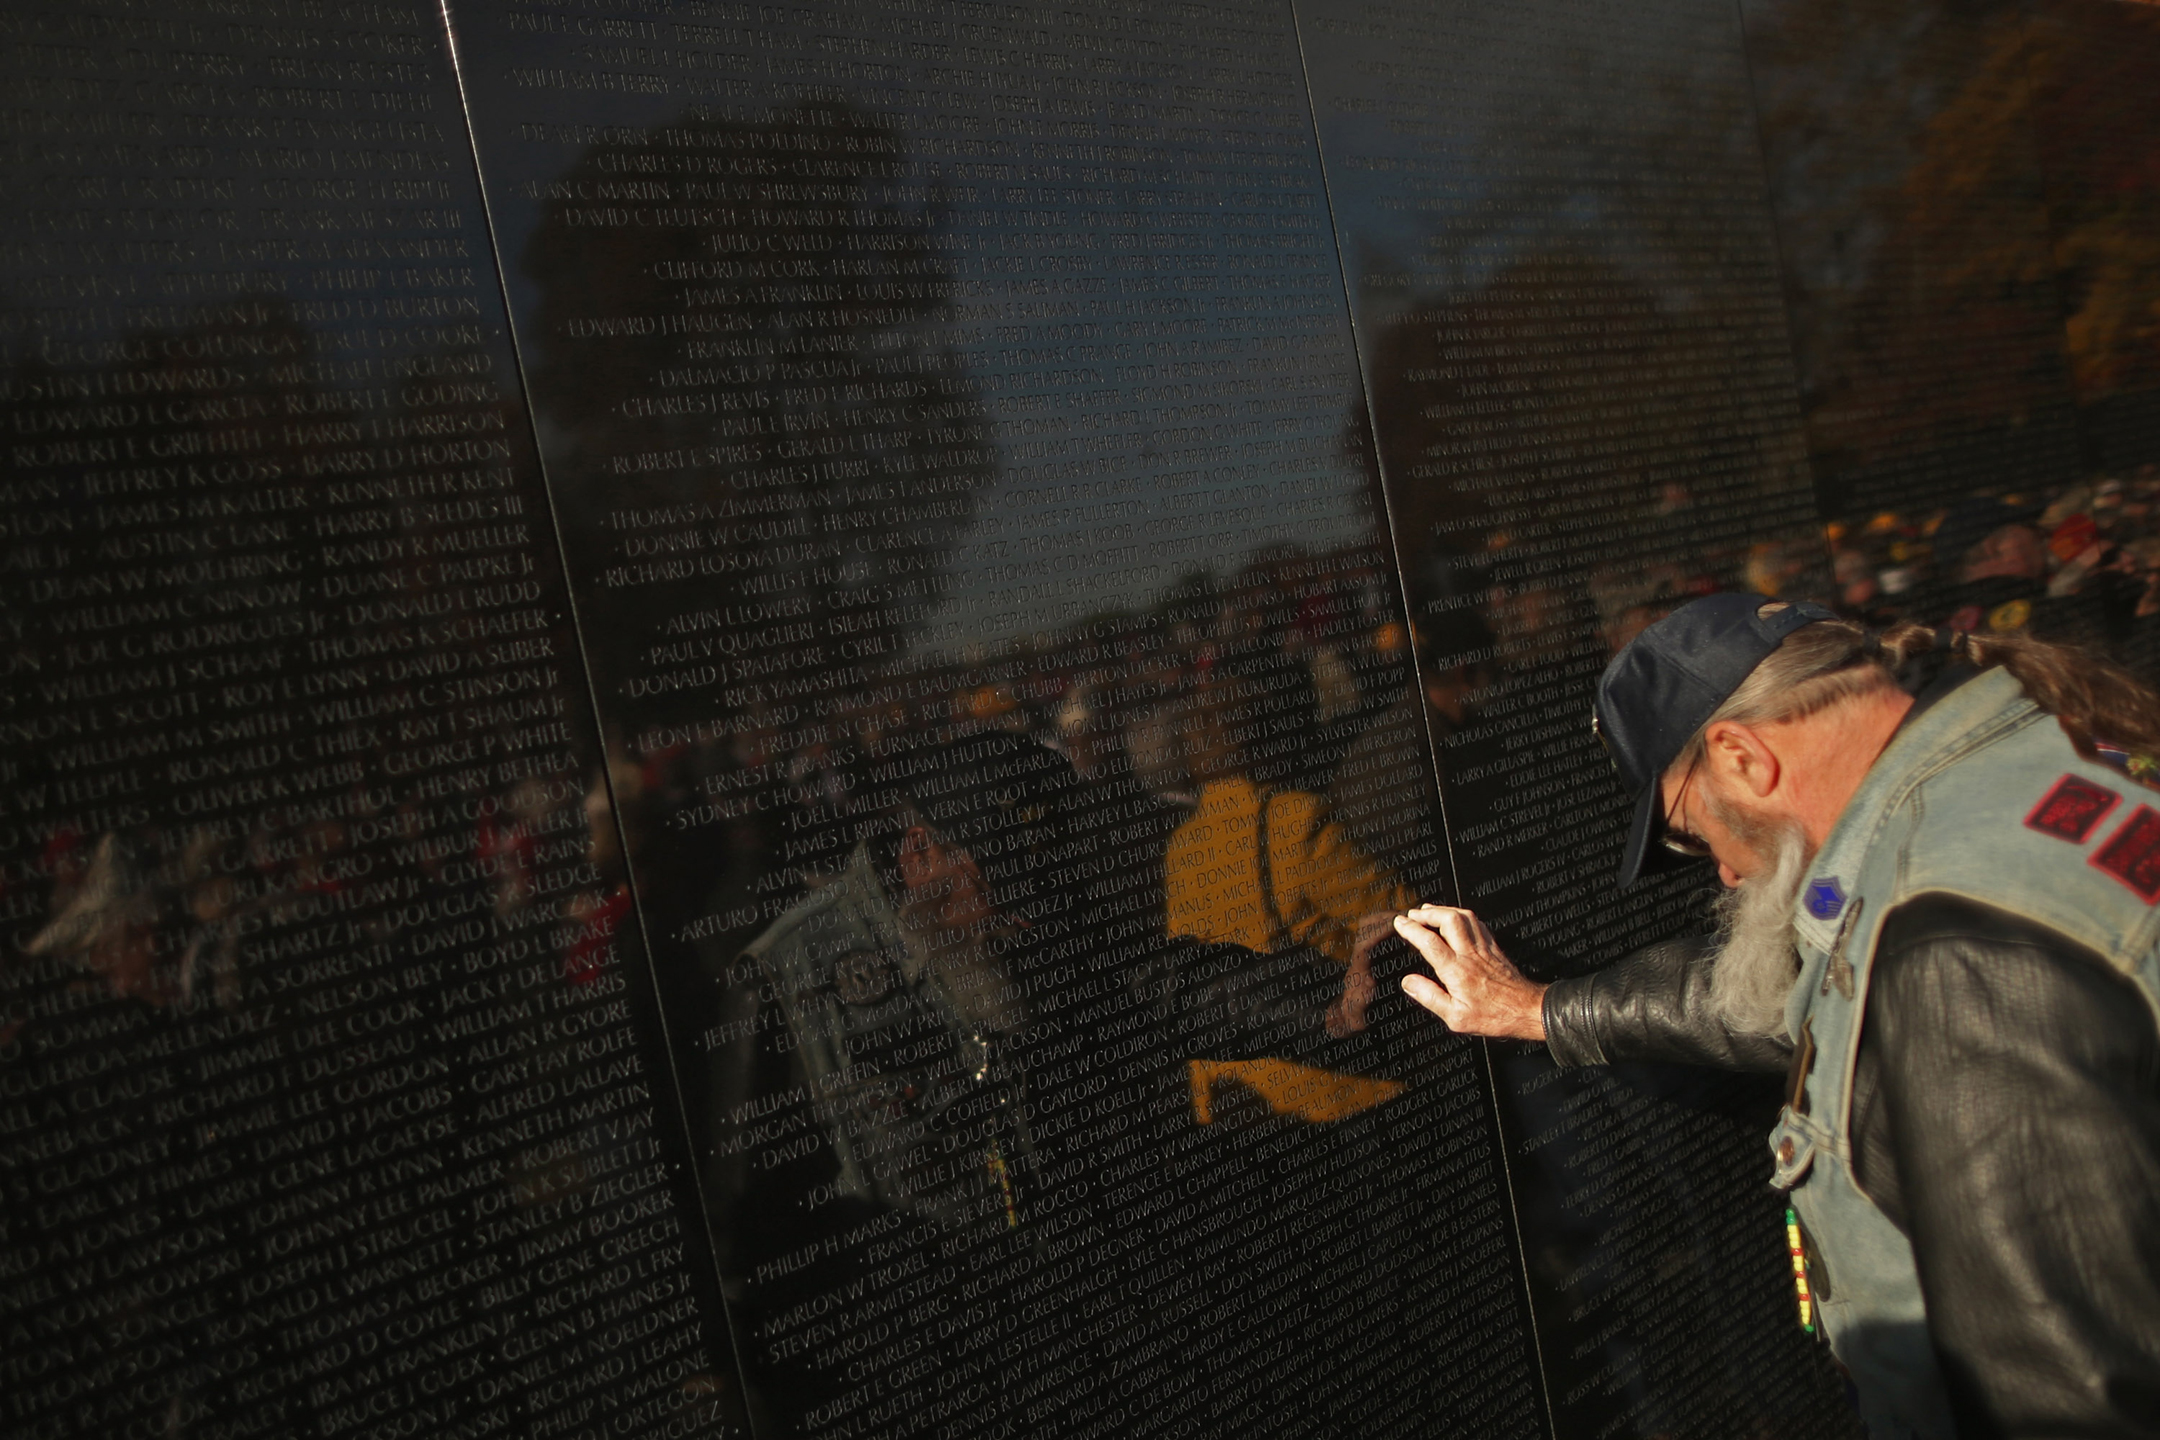 A man with a hat, ponytail, and a vest hangs his head as he touches the Vietnam Veterans Memorial, with his reflection seen in the surface of the monument